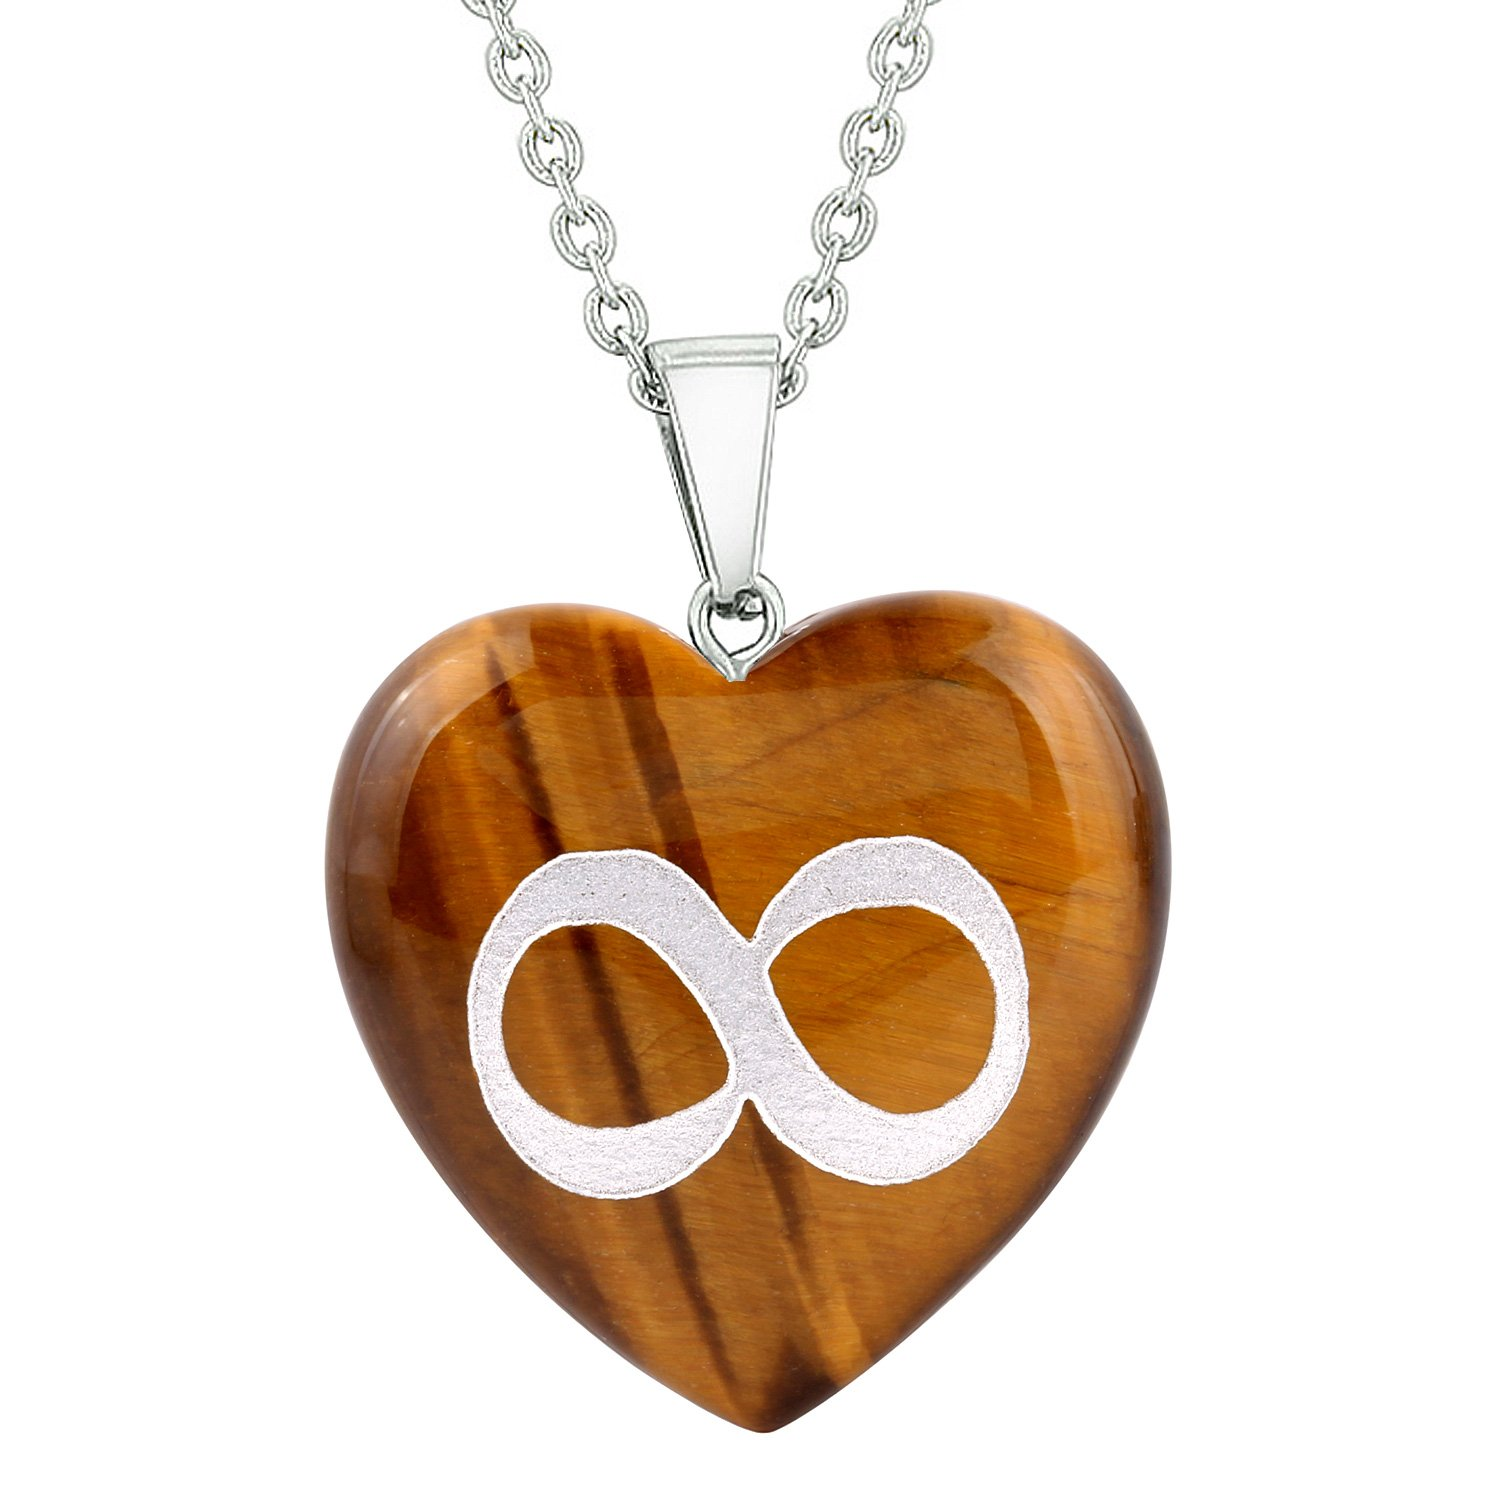 Tiger Eye Gemstone Protection Talisman Heart Shaped Jewelry and Gifts